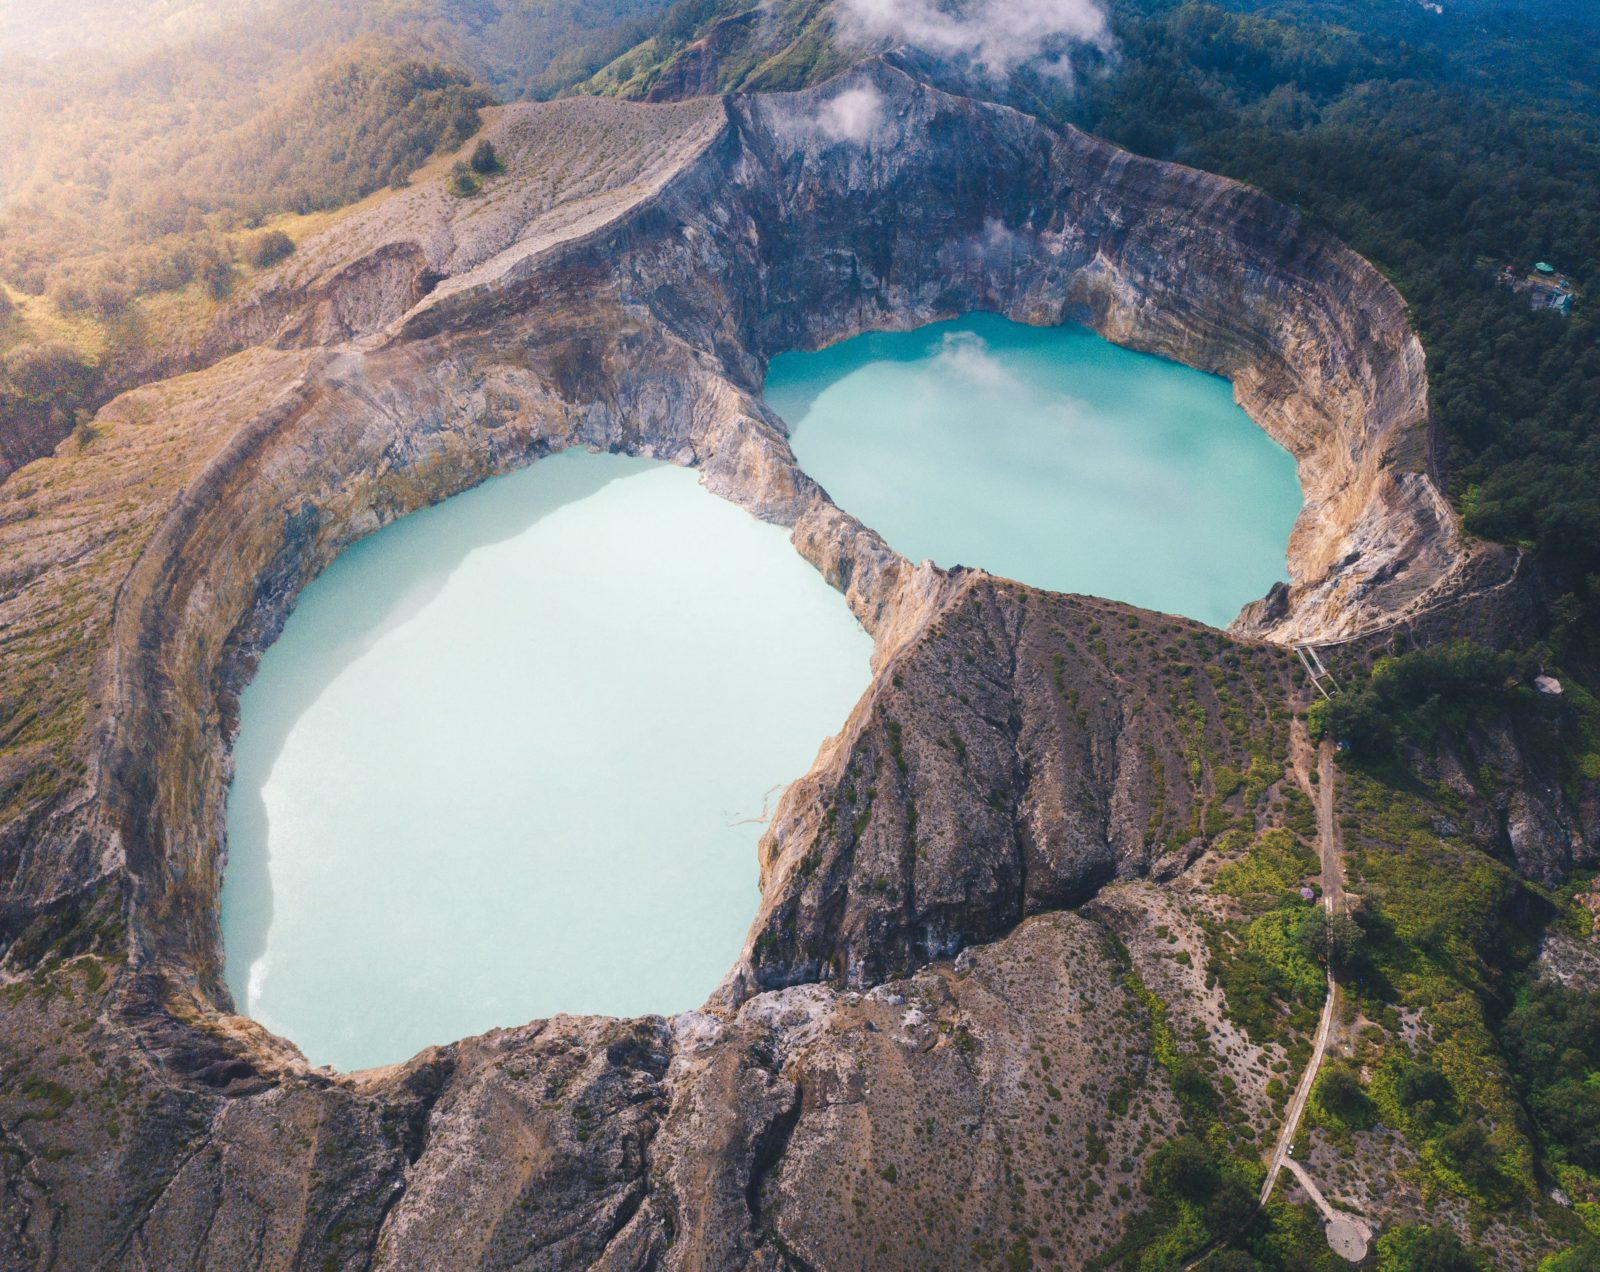 See the magical Kelimutu lake up in the mountain with Hello Flores